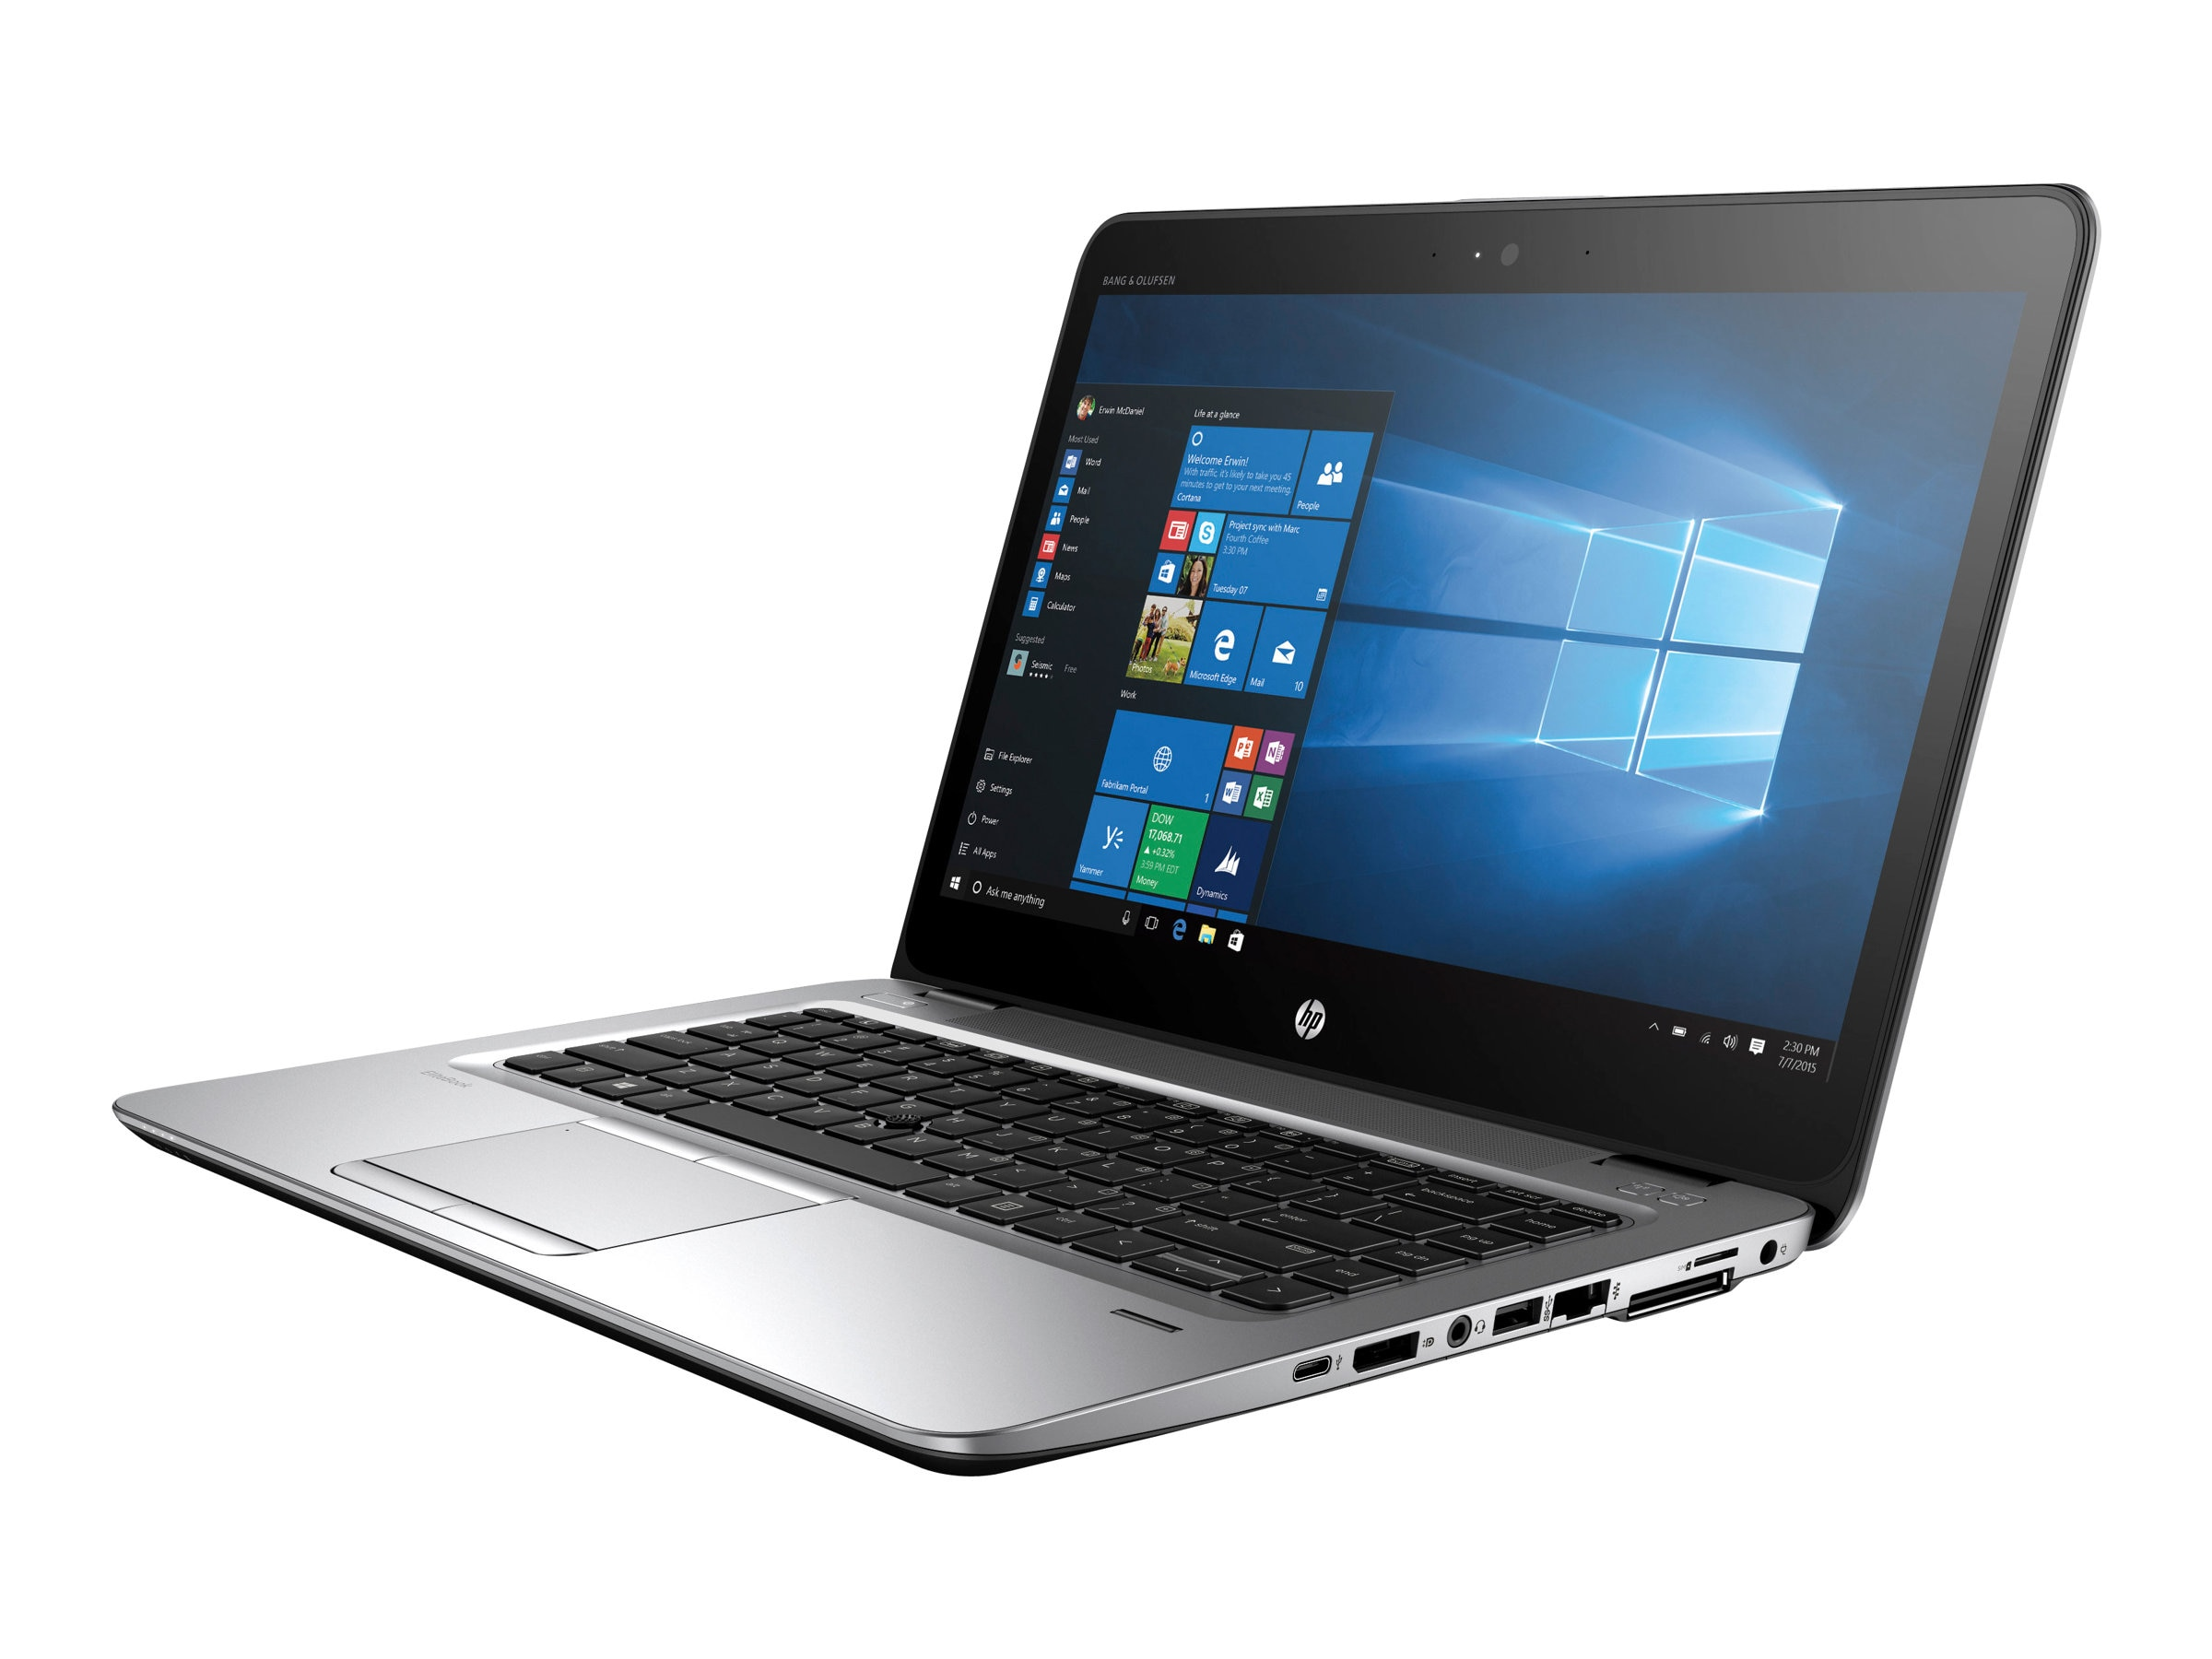 HP EliteBook 840 G3 2.6GHz Core i7 14in display, X9U25UT#ABA